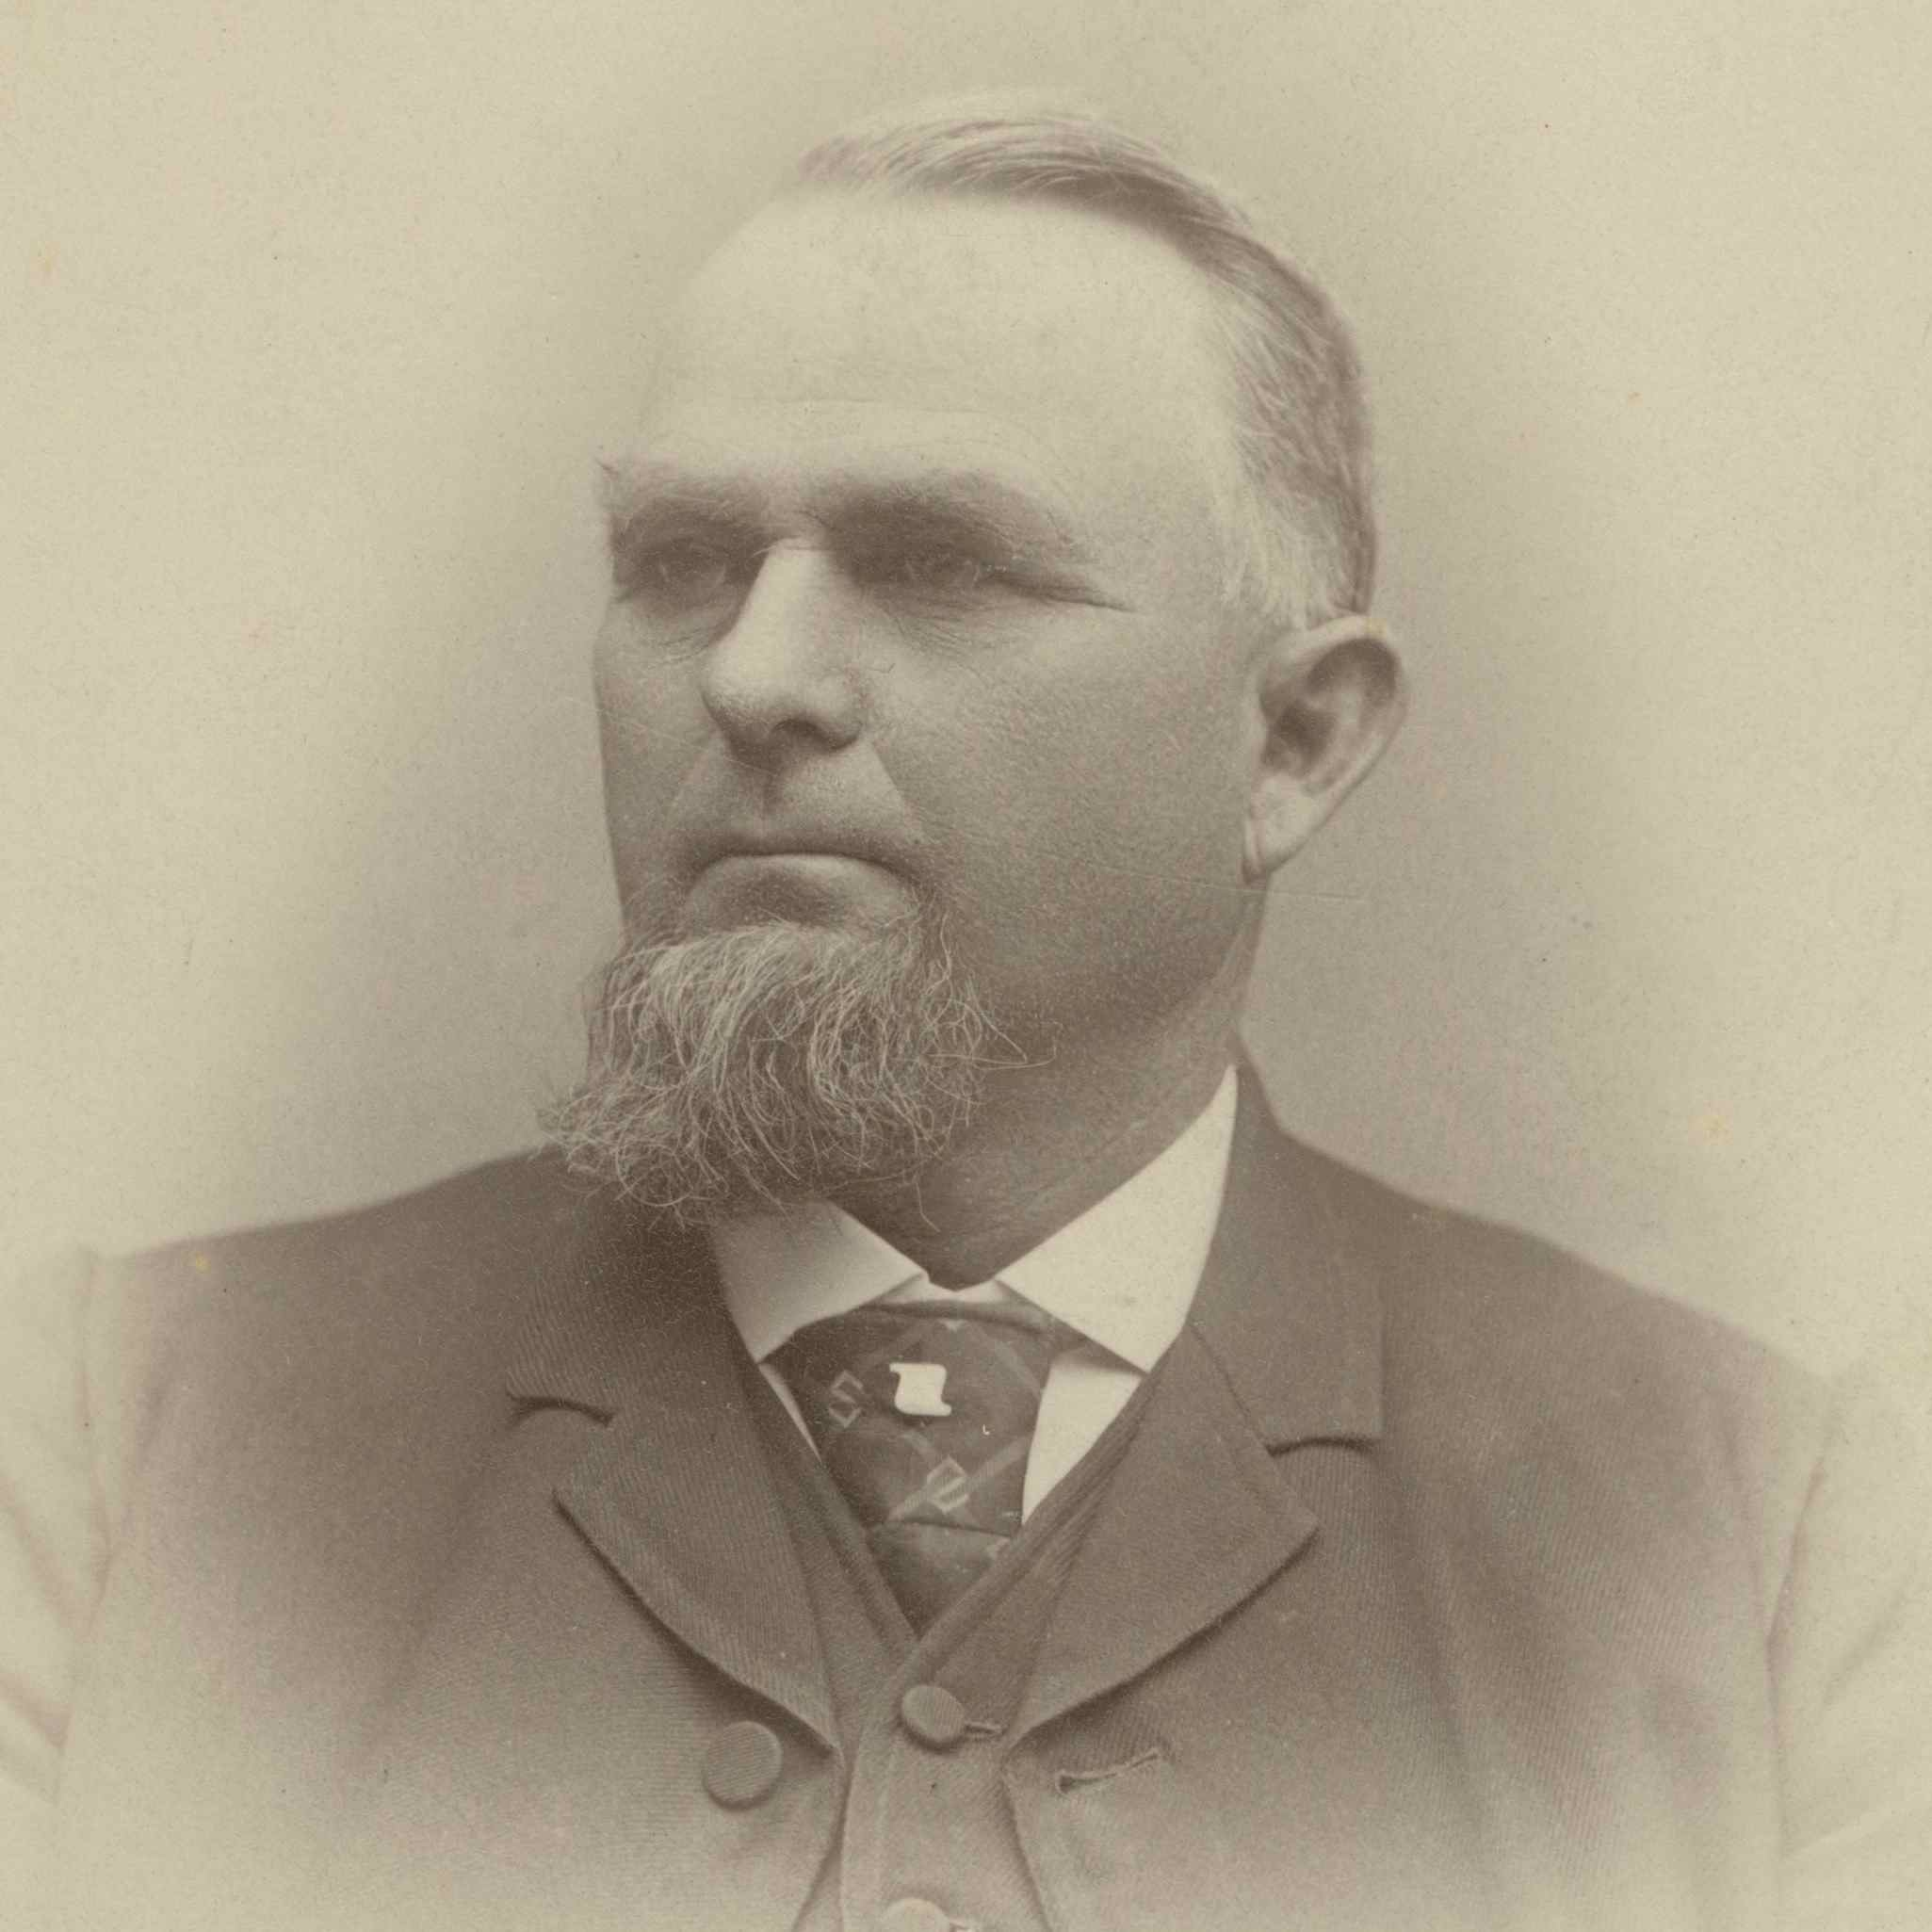 Image taken in the 1890s